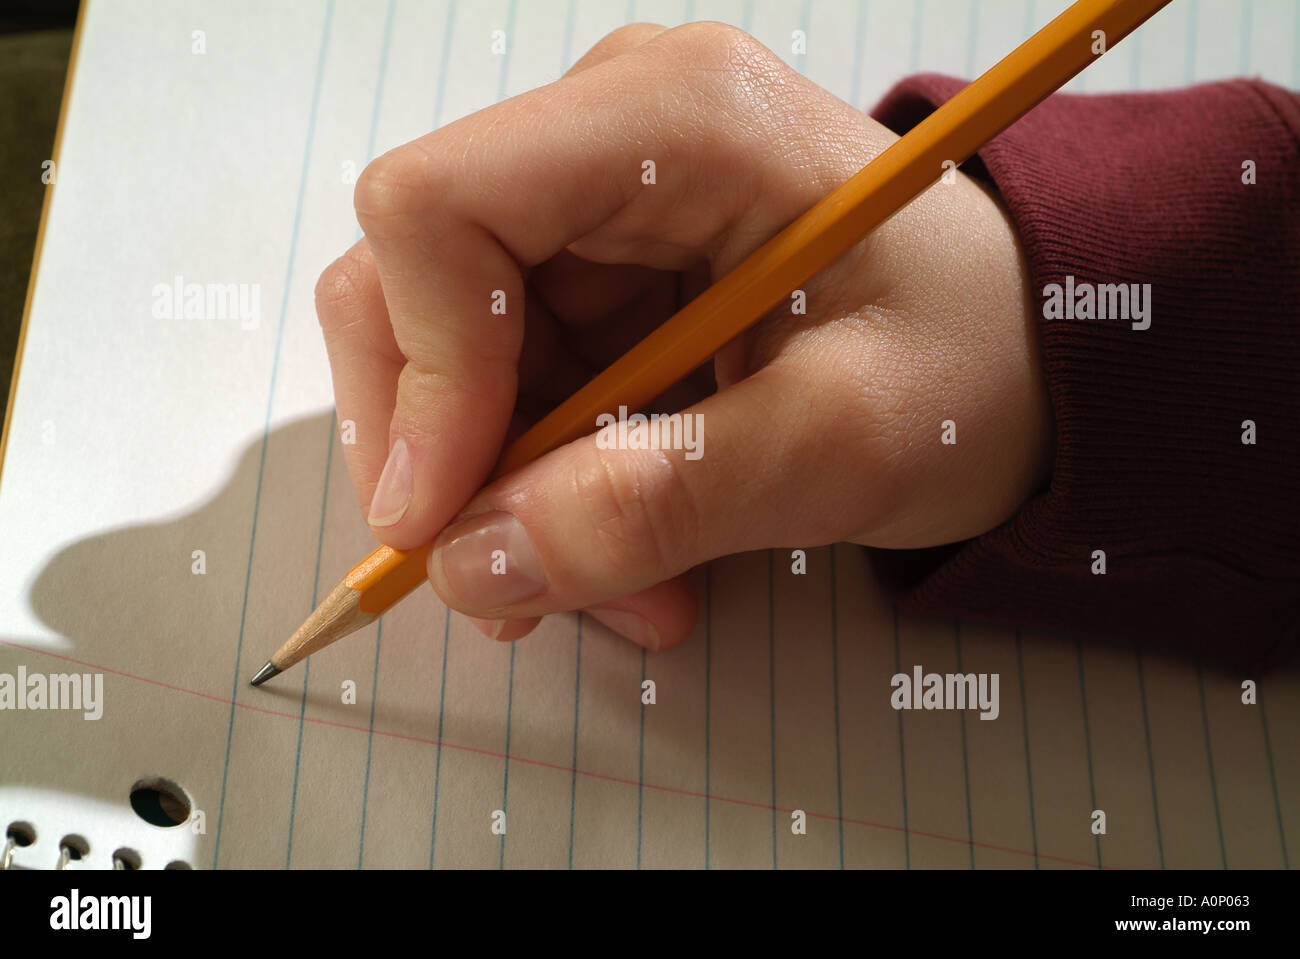 Starting a Letter - Stock Image